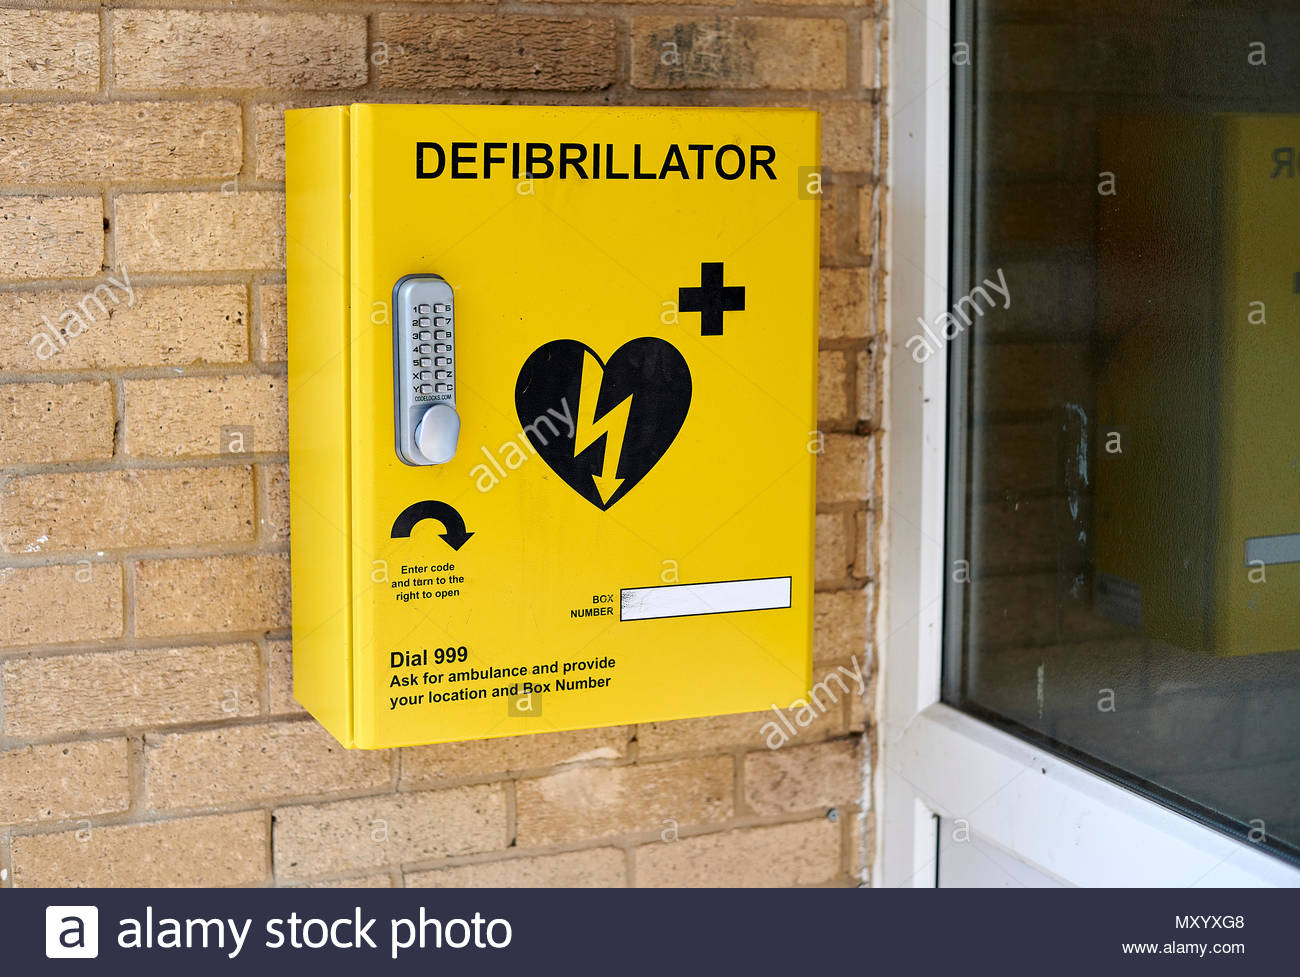 Defibrillator on wall outside a Sports Club in Cotswolds - Stock Image